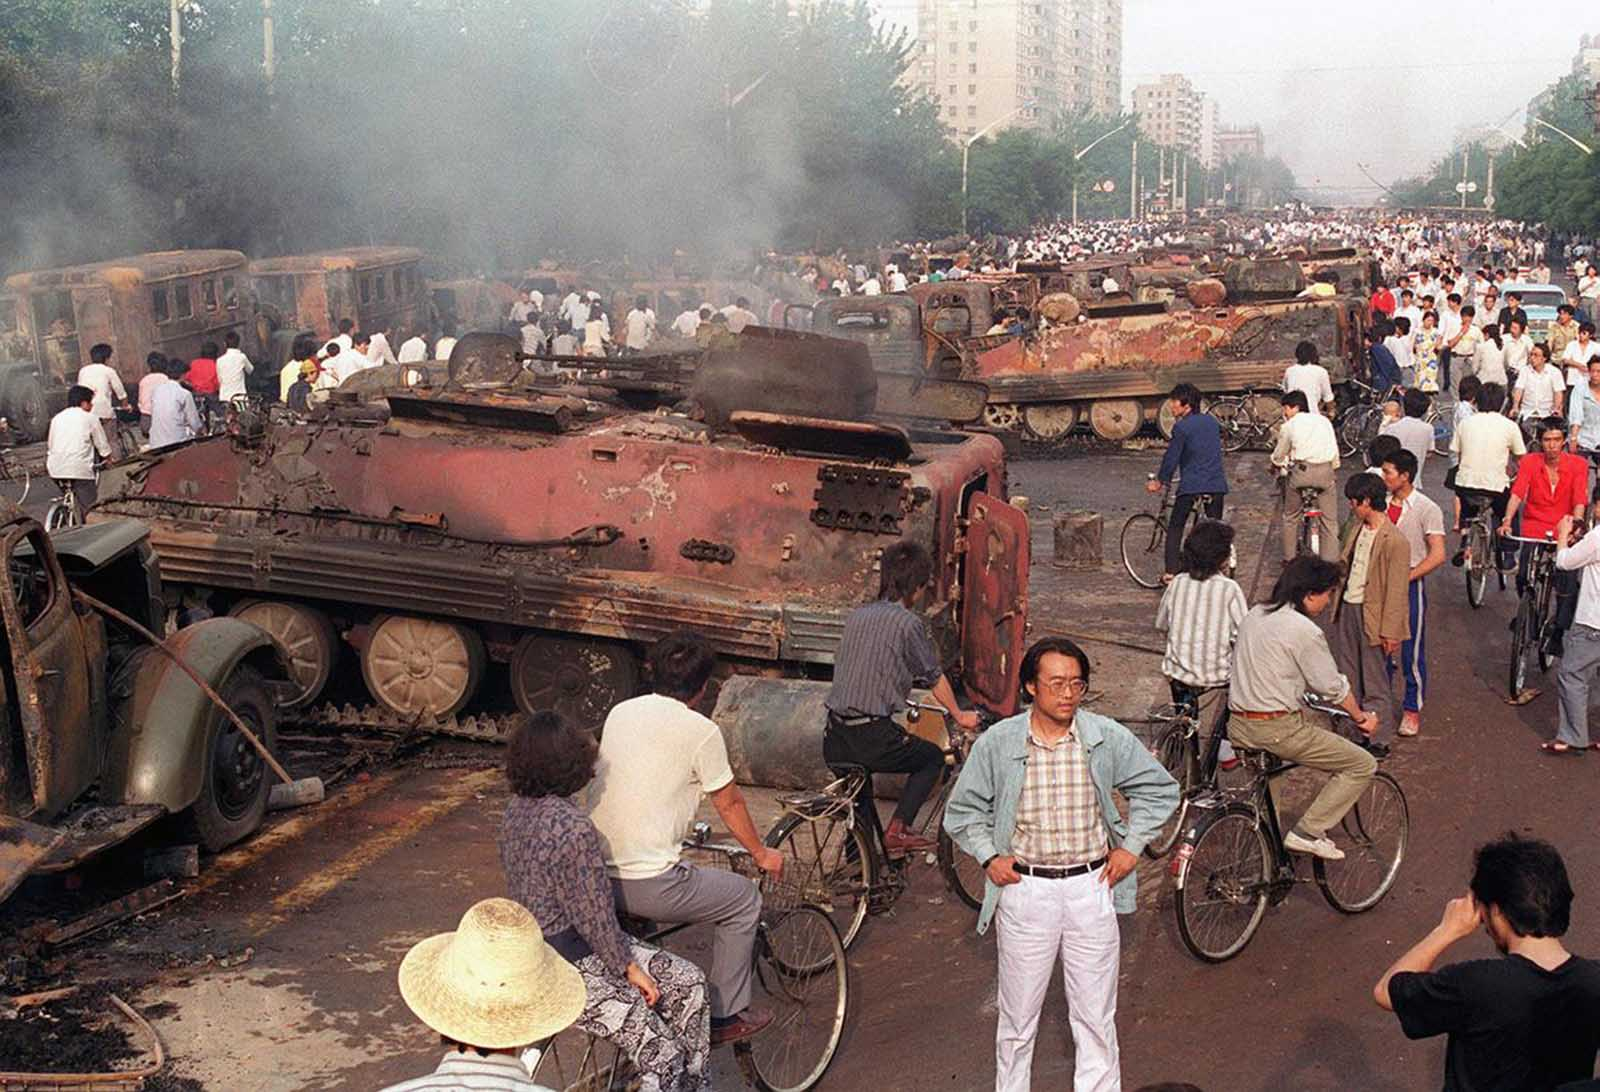 Beijing residents inspect the interior of more than 20 armored personnel carriers burned by demonstrators to prevent the troops from moving into Tiananmen Square, on June 4, 1989.